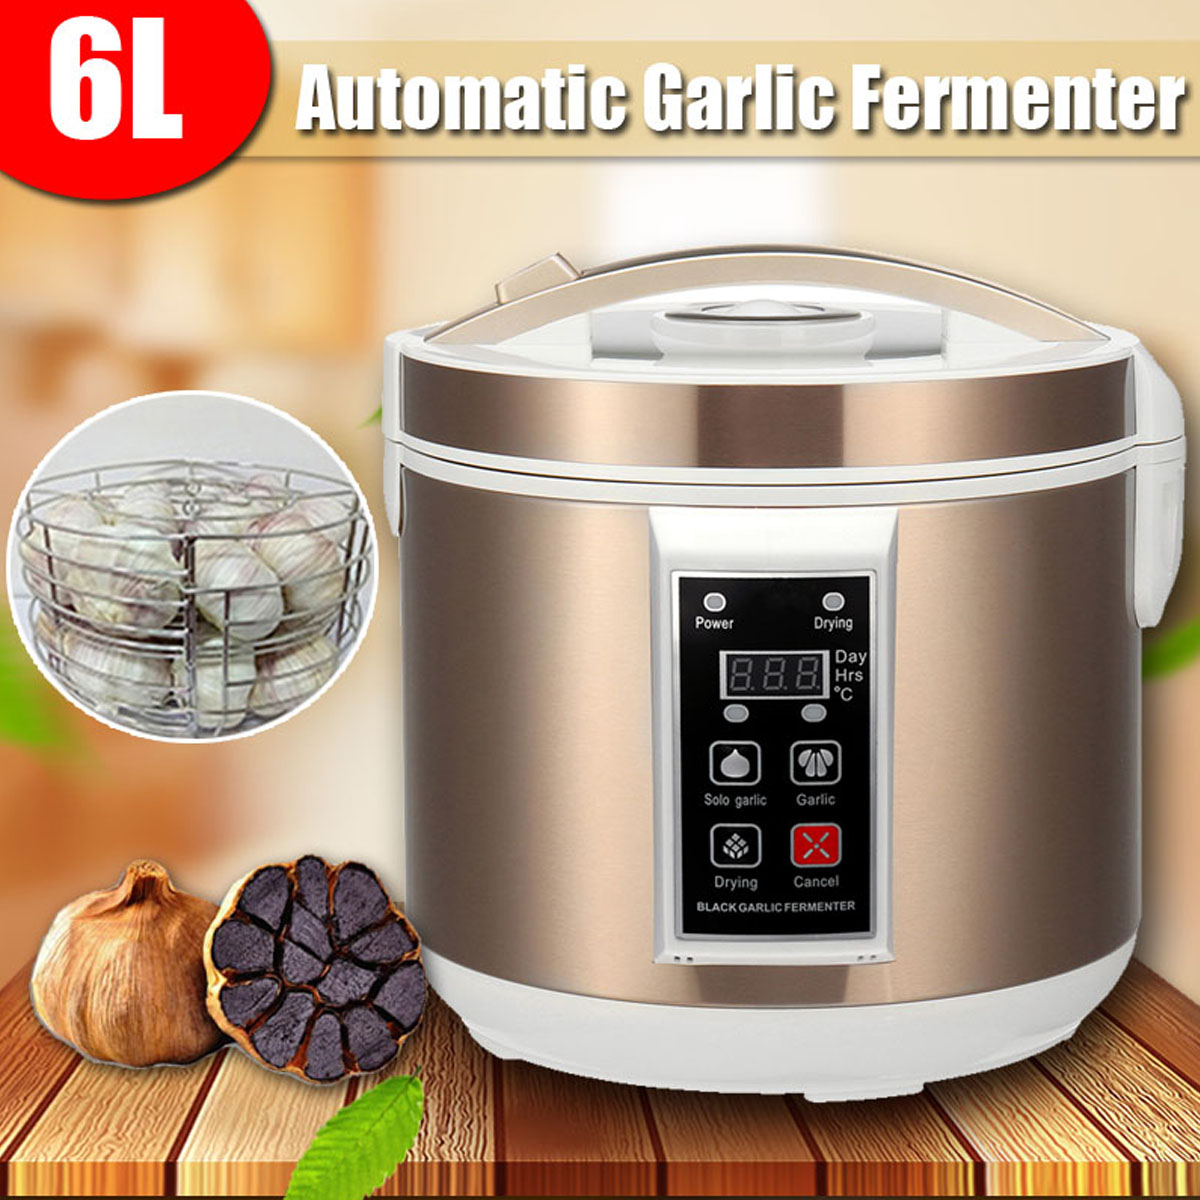 WARMTOO EU/US 220V 6L Large Smart Automatic Black Garlic Fermenter Maker Zymolysis Machine Electric Household Automatic Pot Box